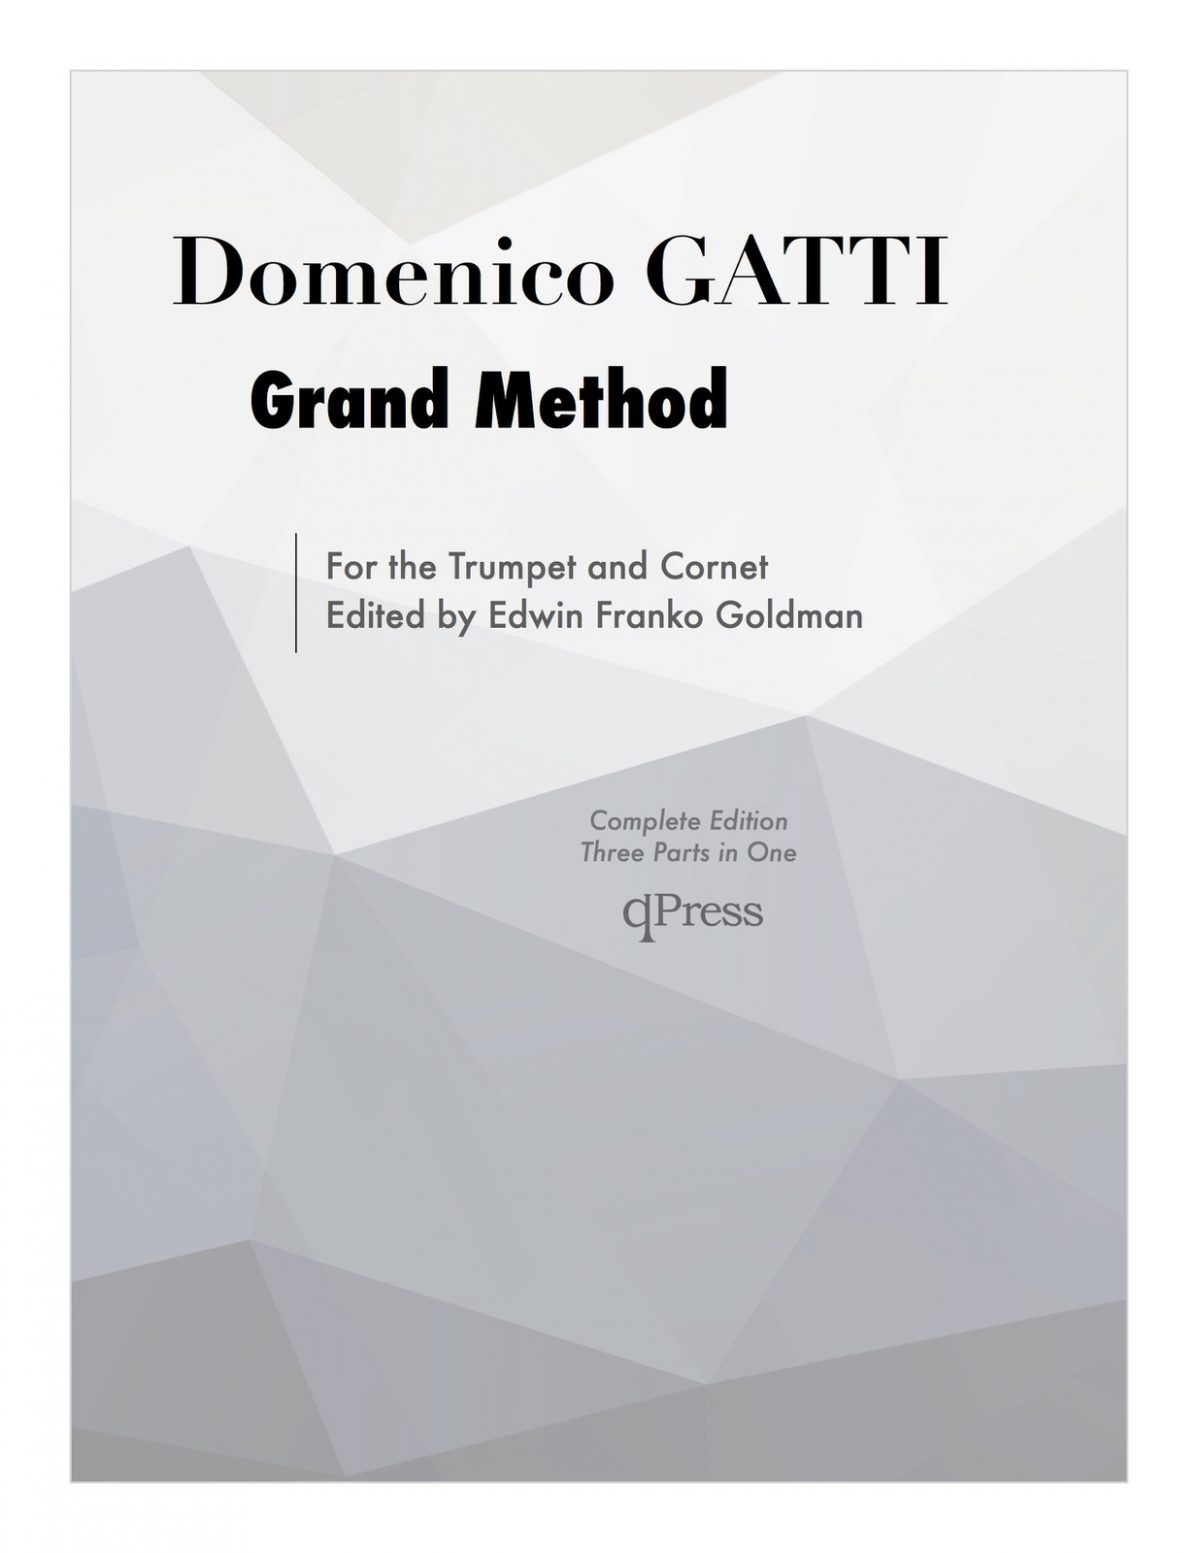 gatti-grand-method-cover